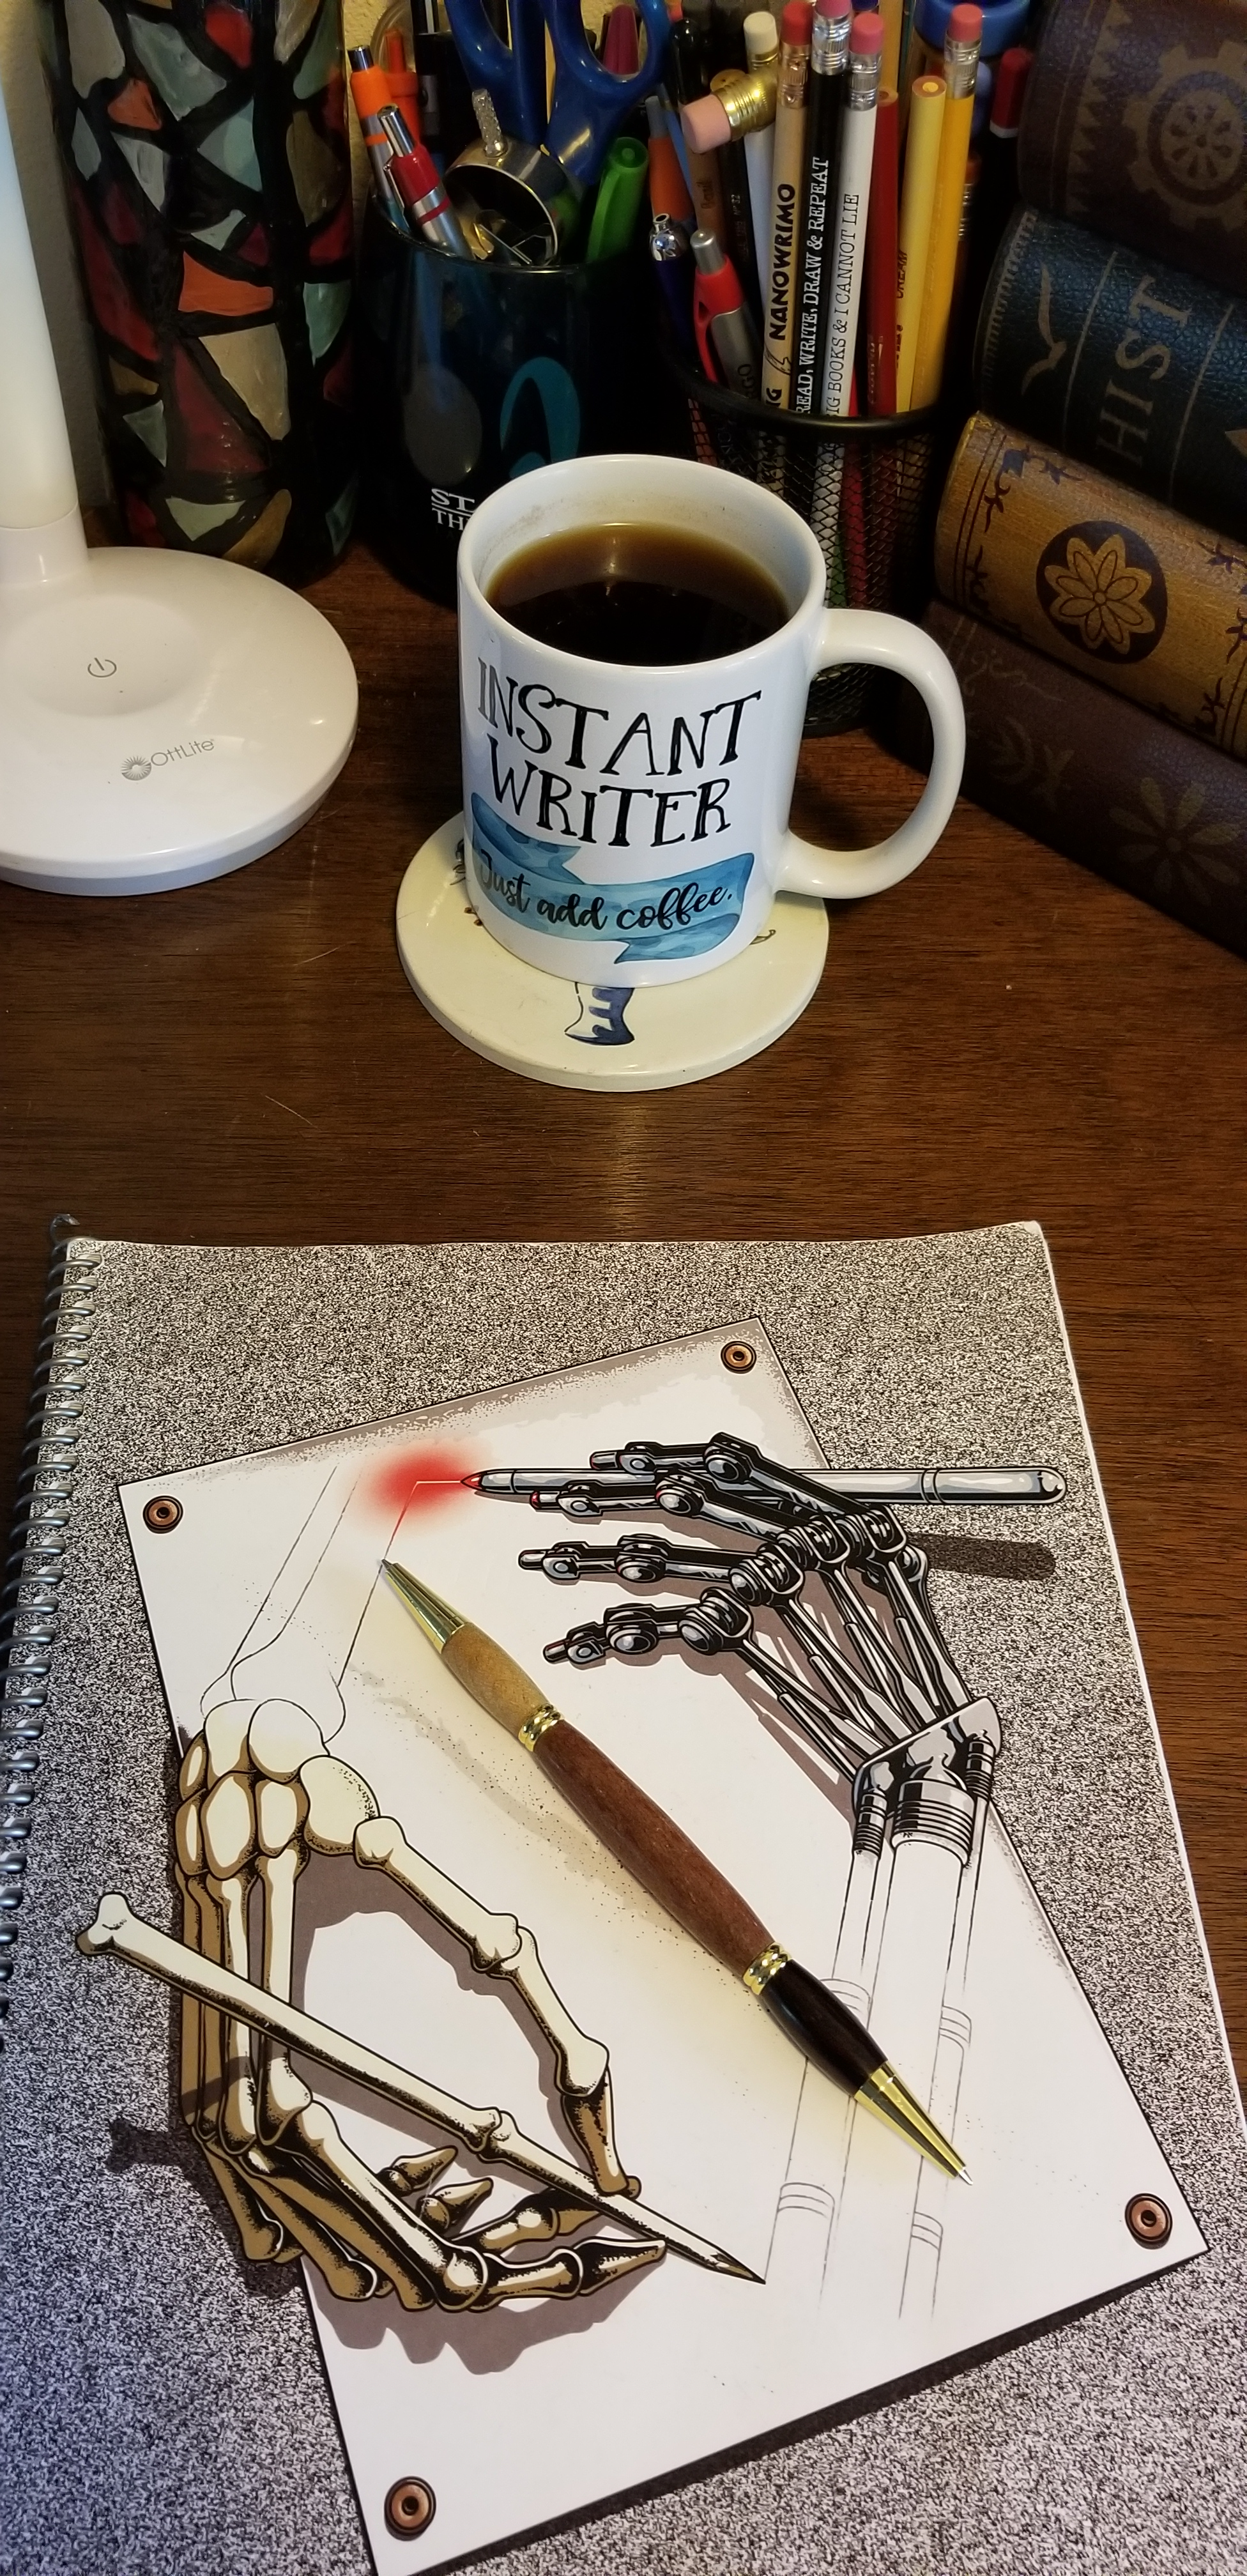 """Desk with a notepad and pen.  The notebook has two hands drawing each other.  One human hand with pencil. The other a metal hand with laser.  The pen is dual point and made with a wood barrel. A full coffee cup with the words """"Instant Writer,  just add coffee"""" is in the upper right corner of the desk.  Two cups are filled with pens and pencils.  The rest of the desk is covered with knickknacks."""